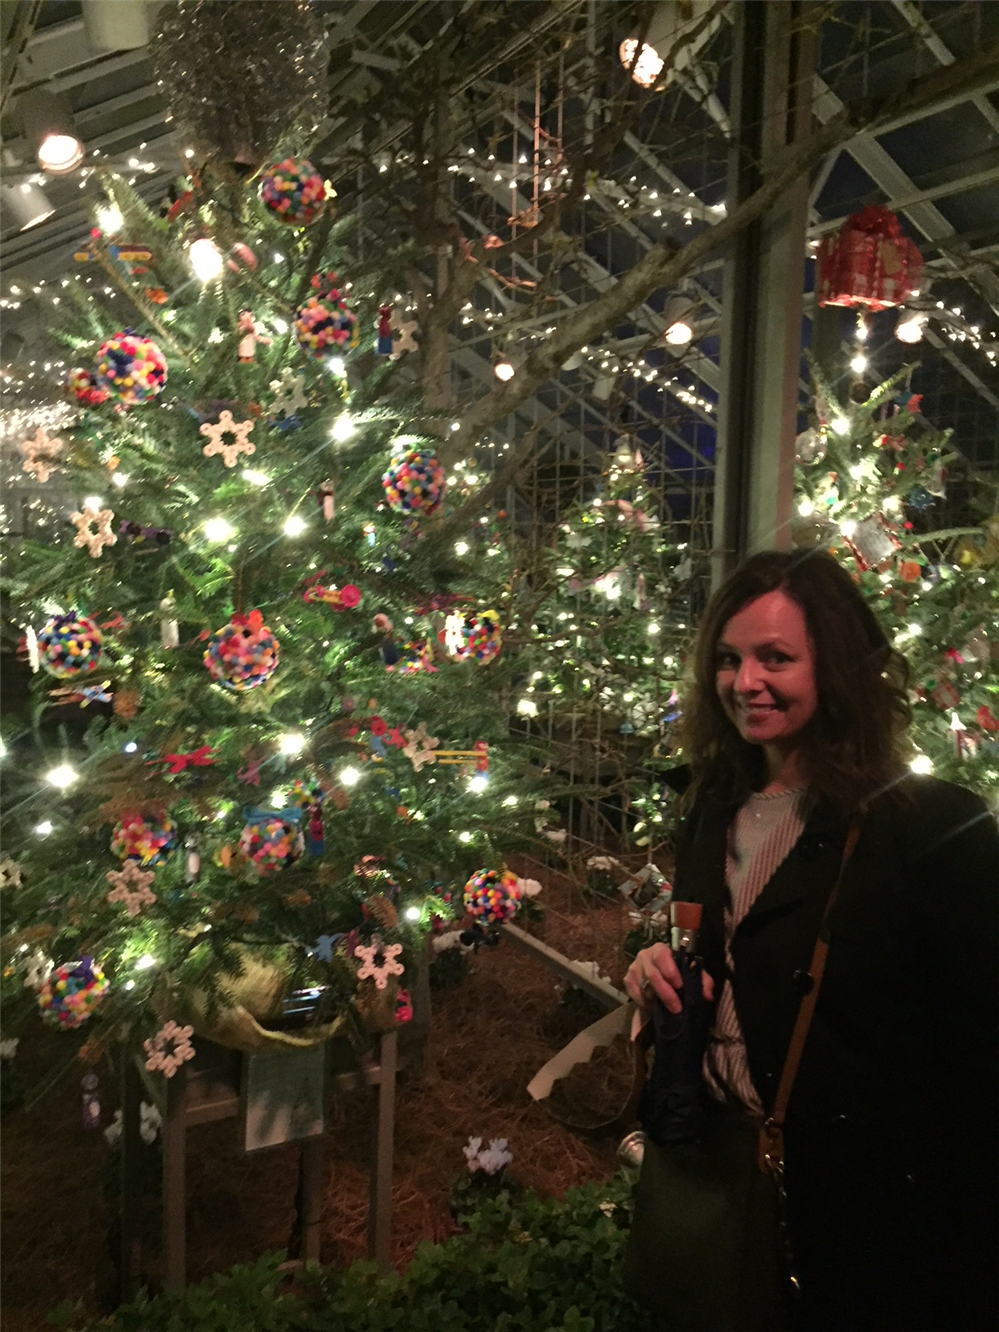 Students' Tree Attracts Spectators at Longwood Gardens